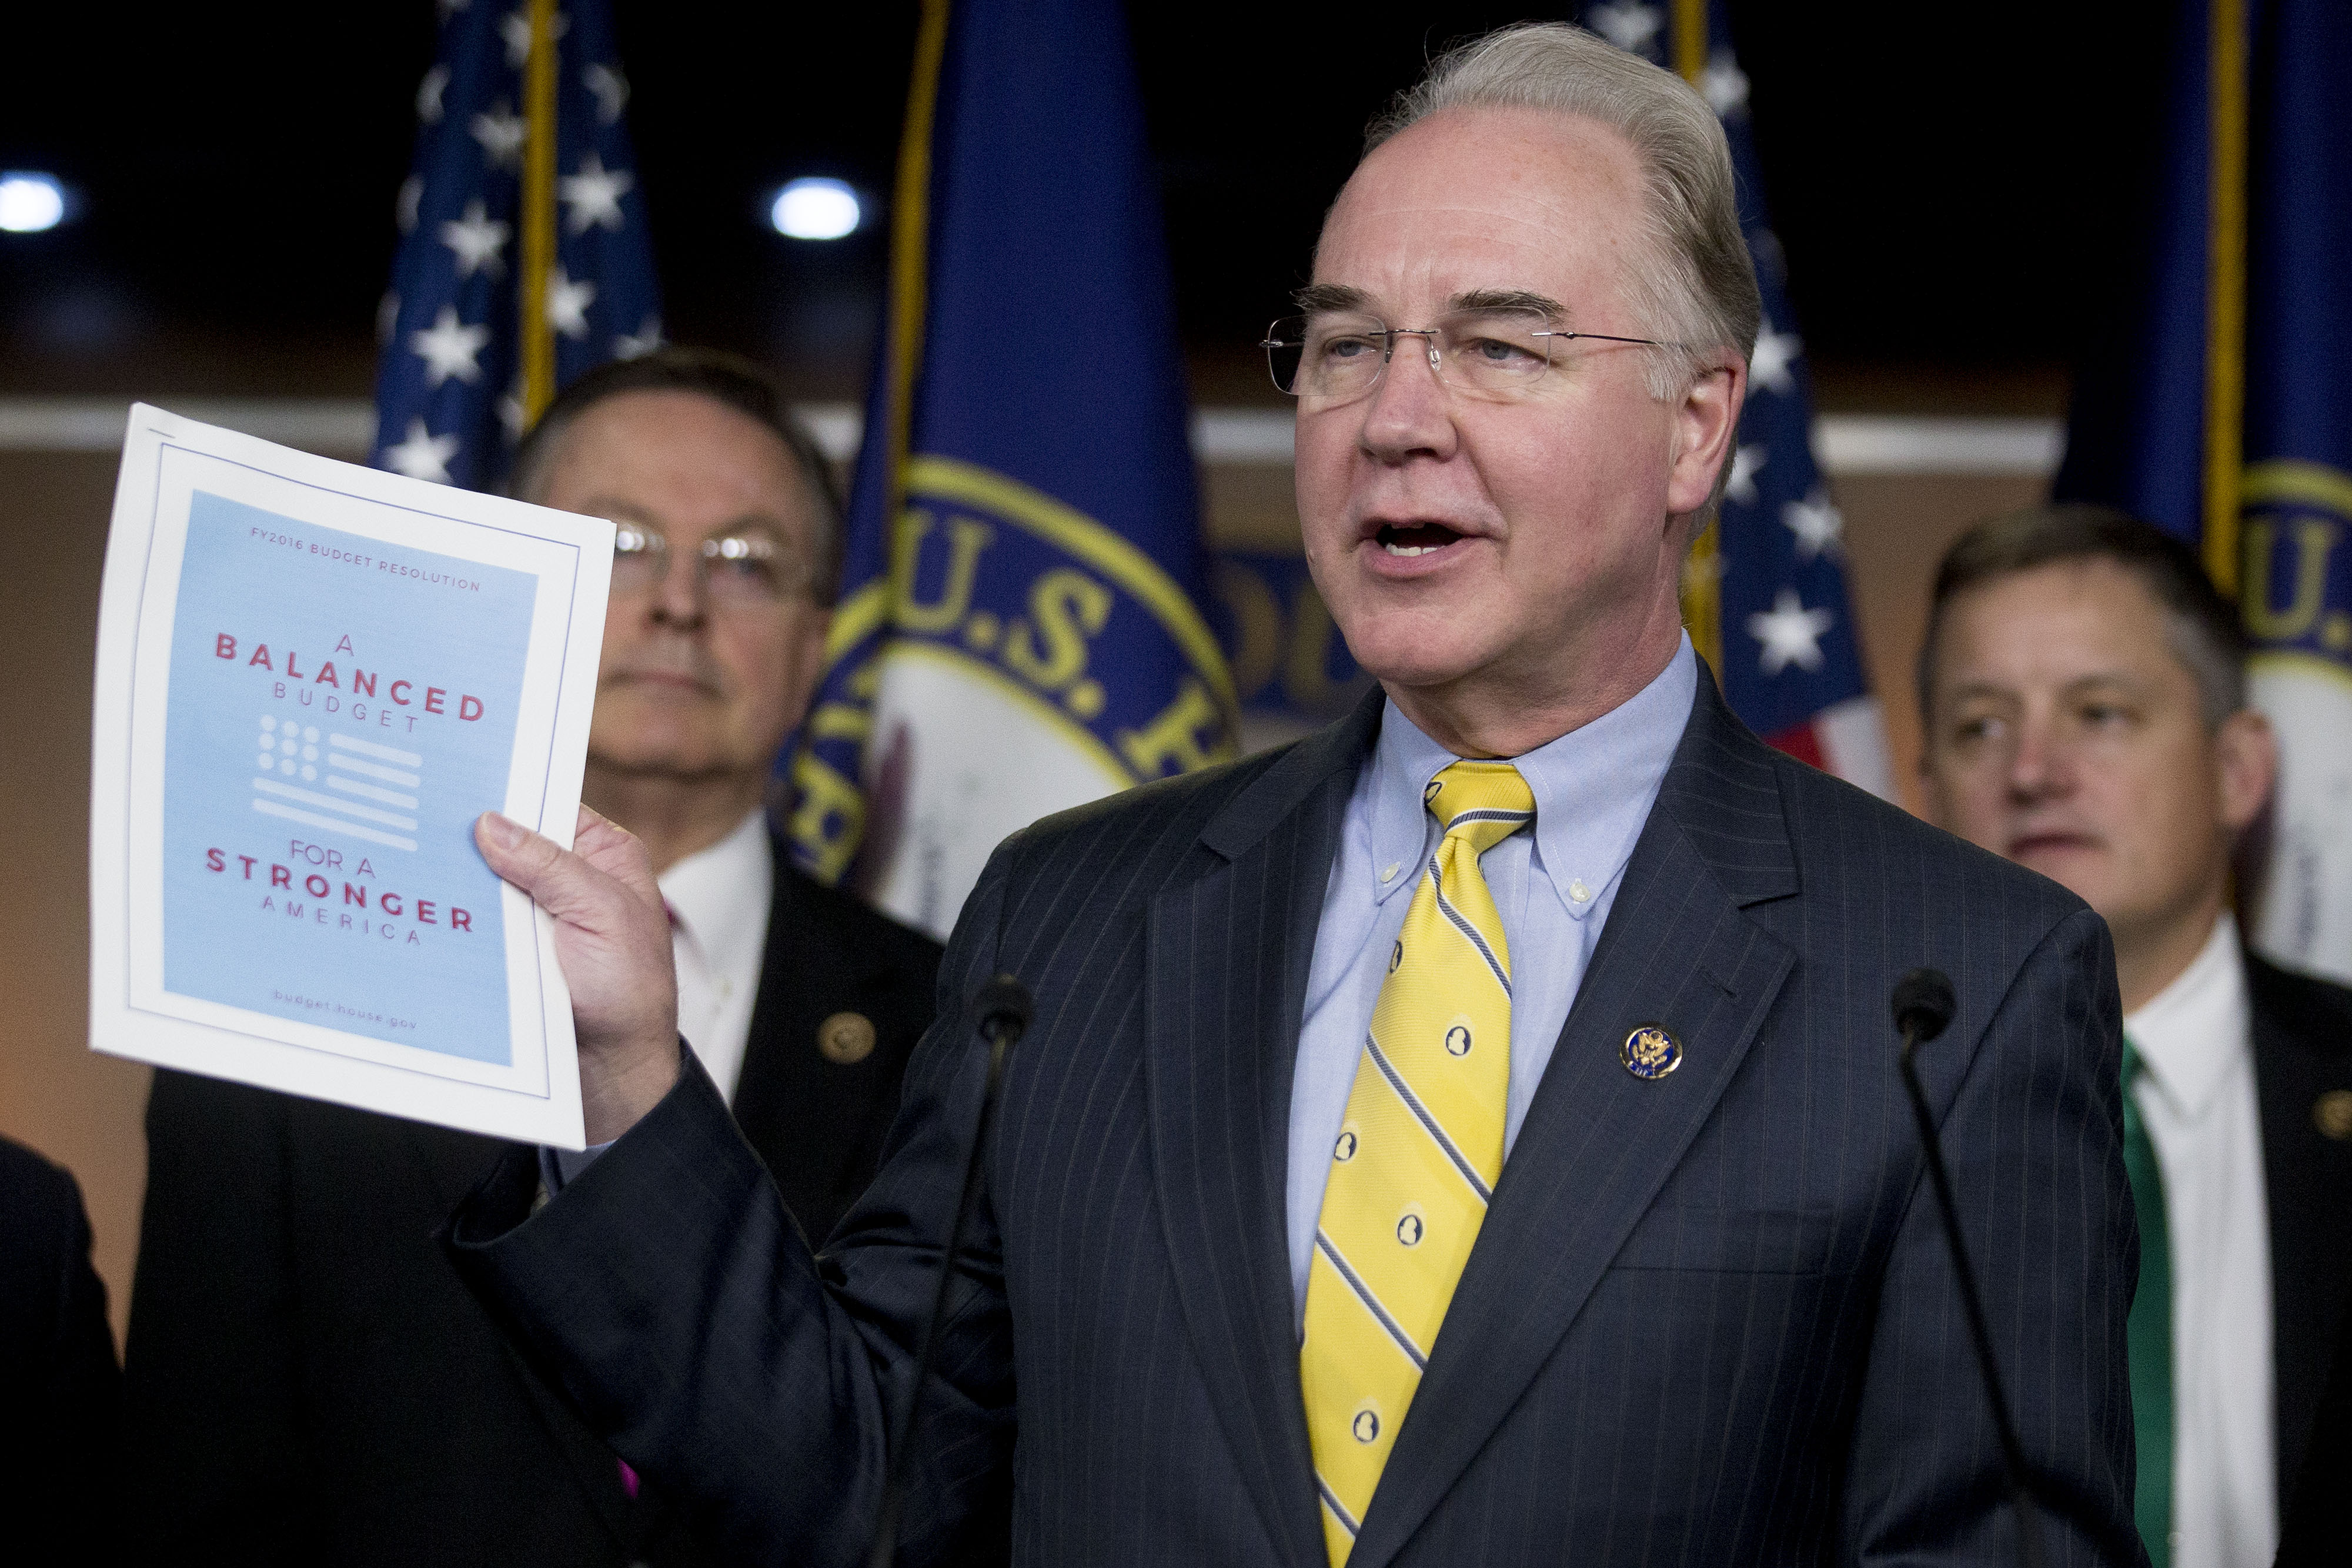 Senators delve into debate over Tom Price as leaders try to cut a deal